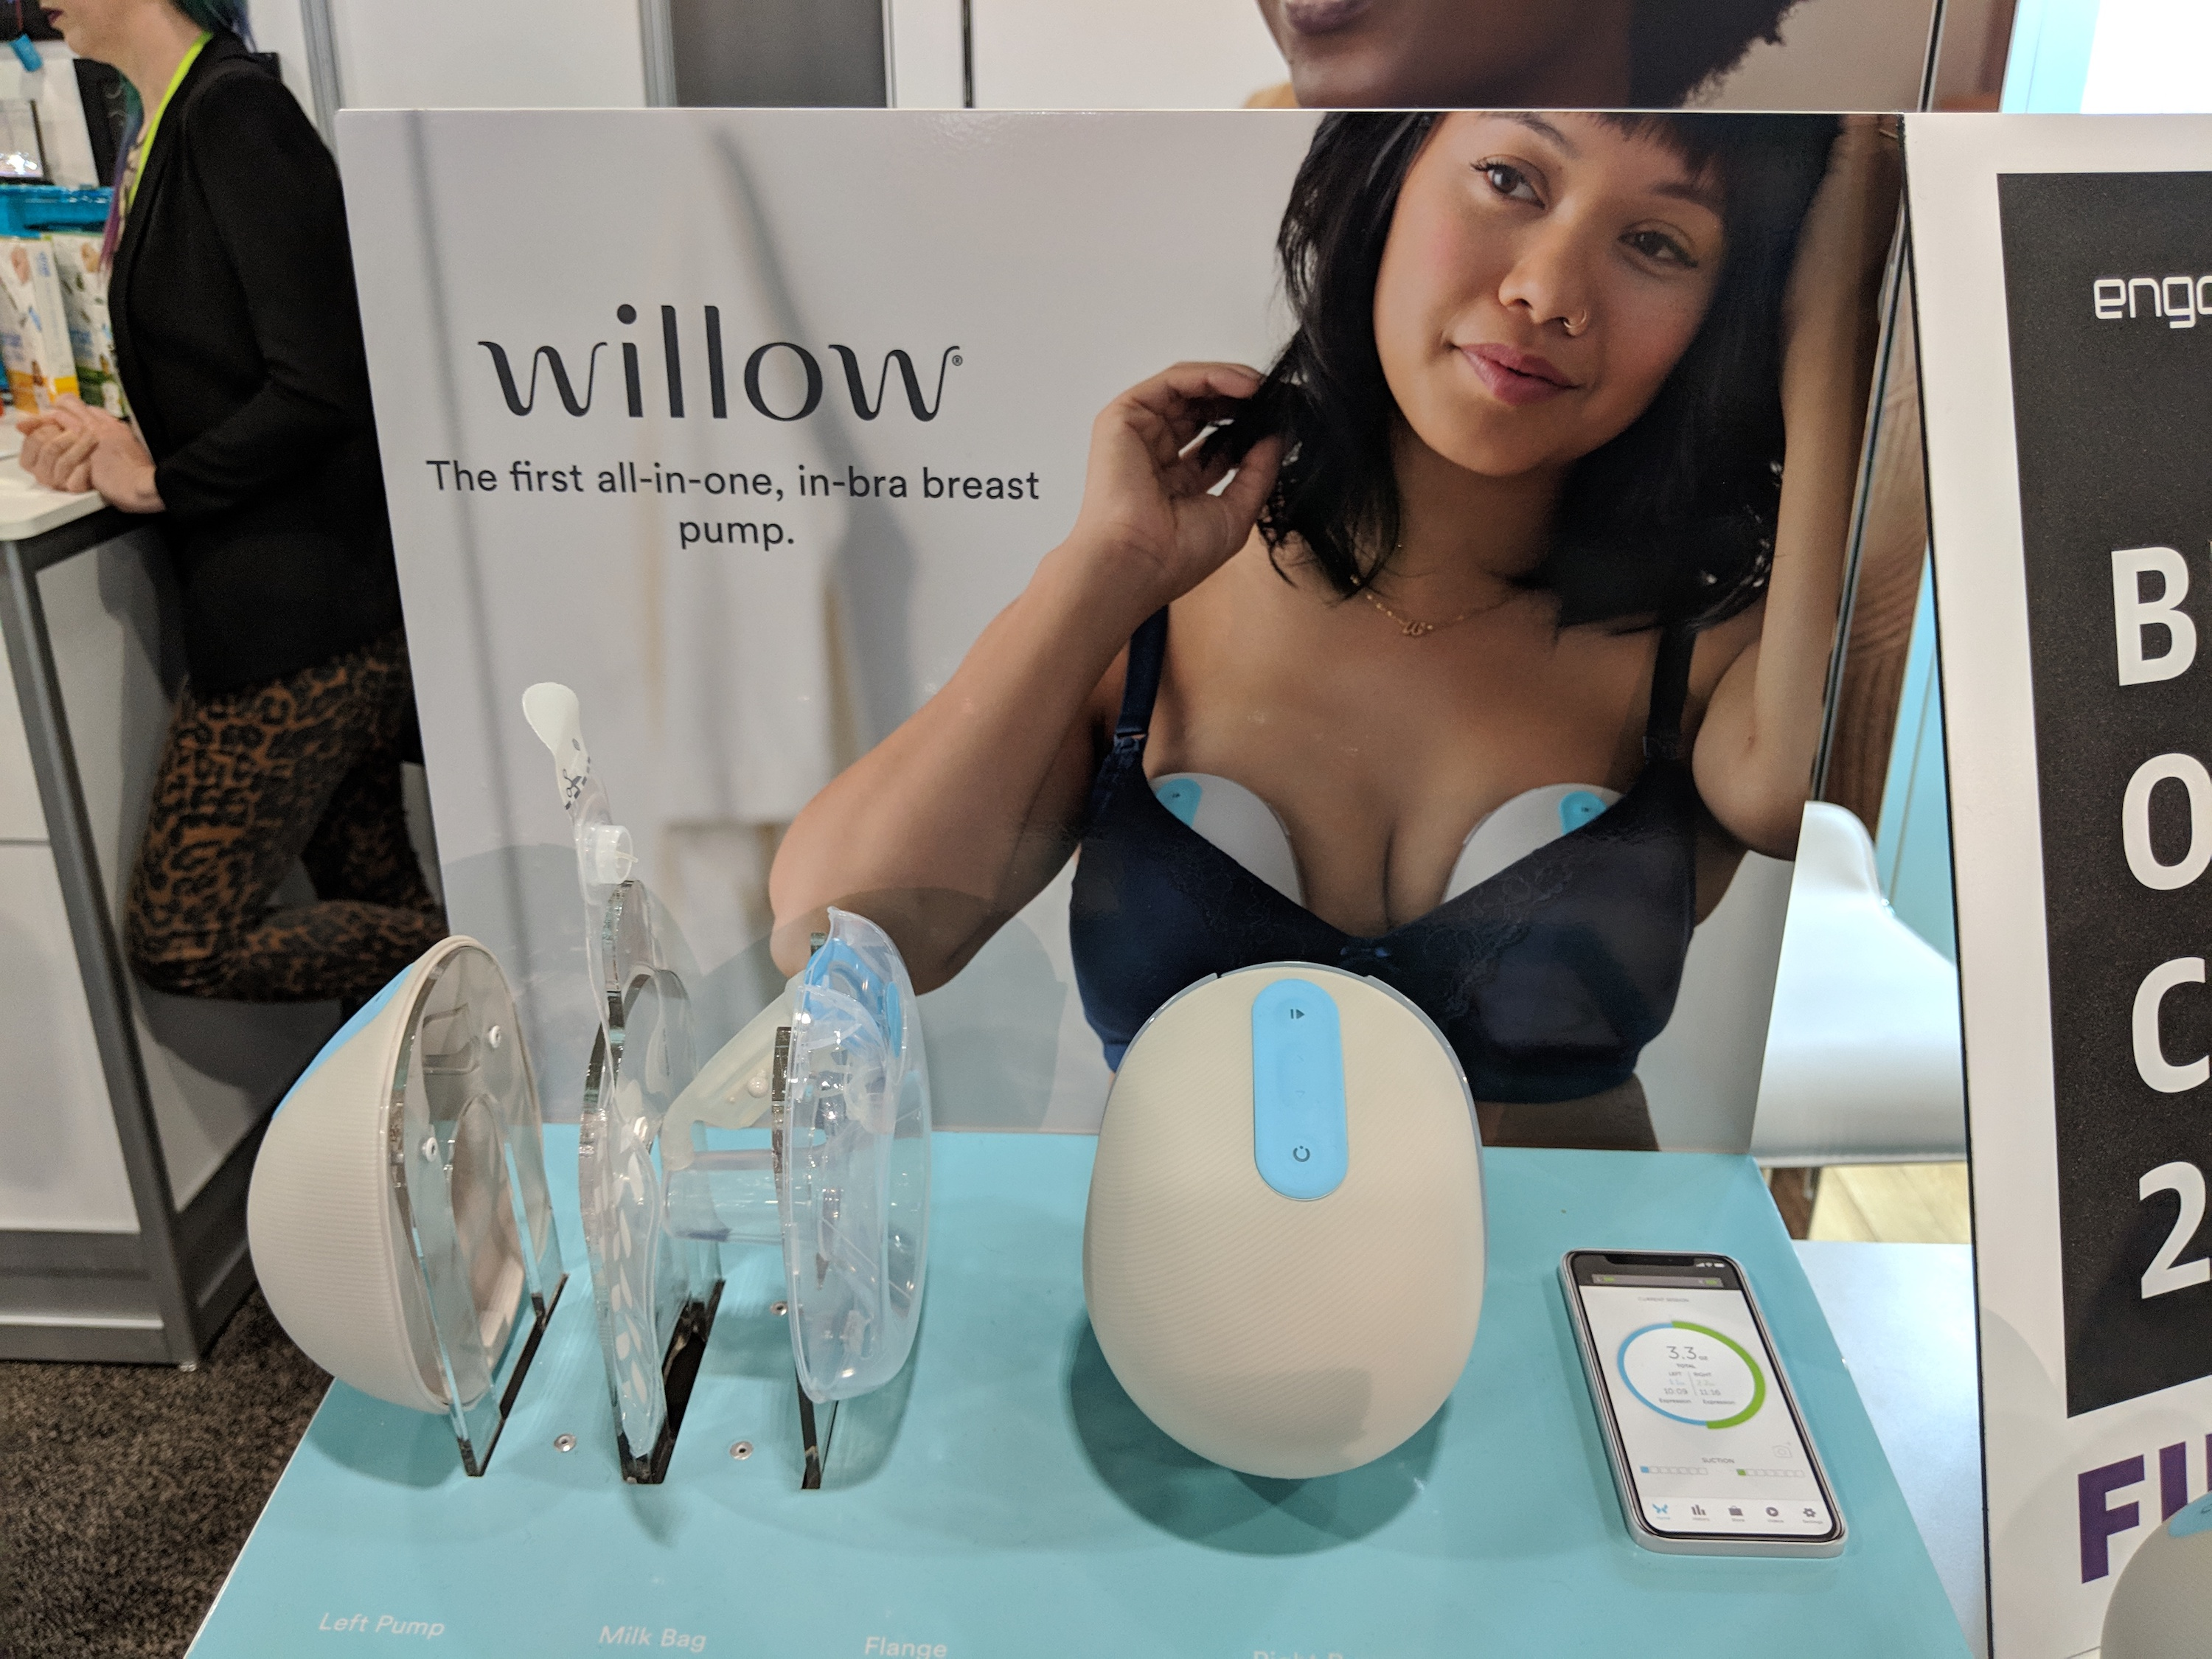 the Willow brand portable breast pump